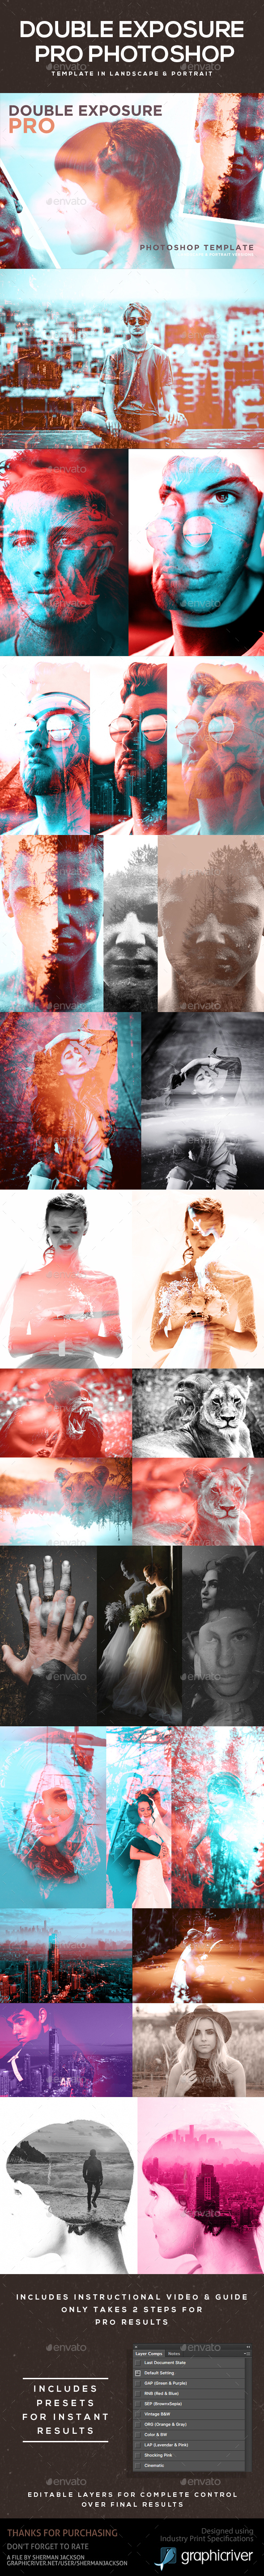 GraphicRiver Double Exposure Pro Photoshop Template 20384643